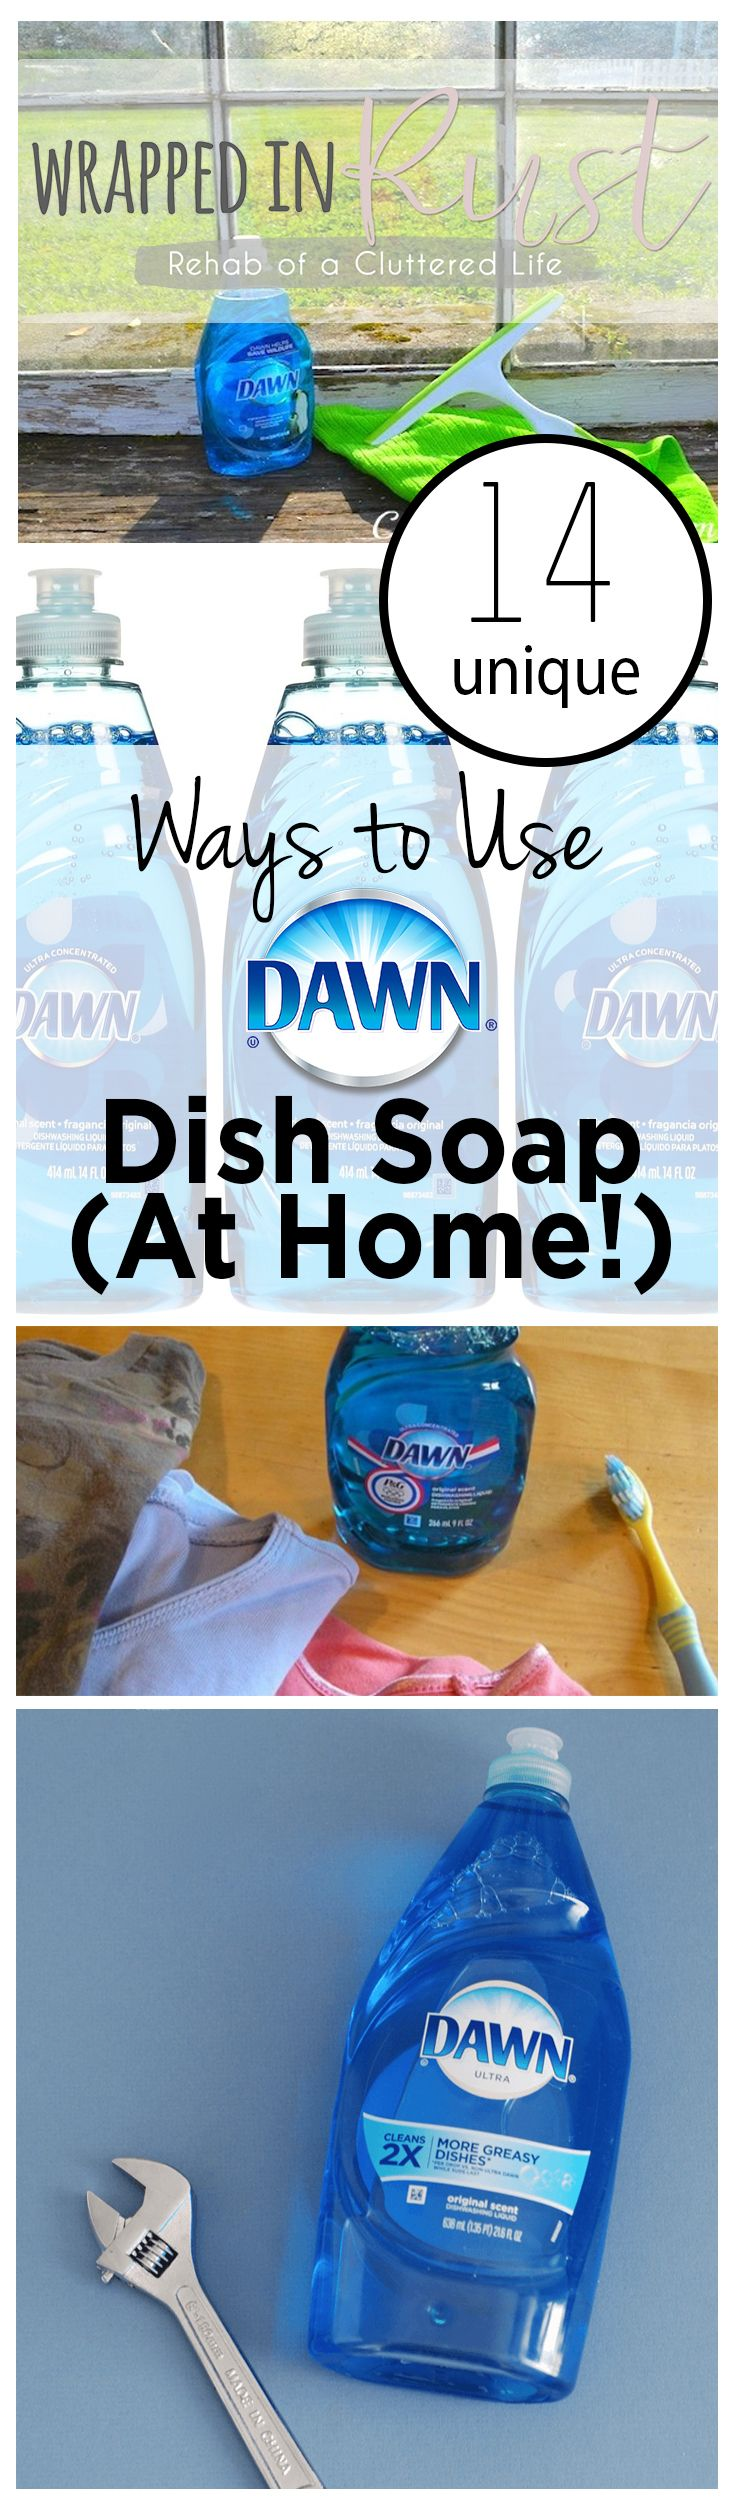 '14 Unique Ways to Use Dawn Dish Soap (At Home!)...!' (via wrappedinrust.com)